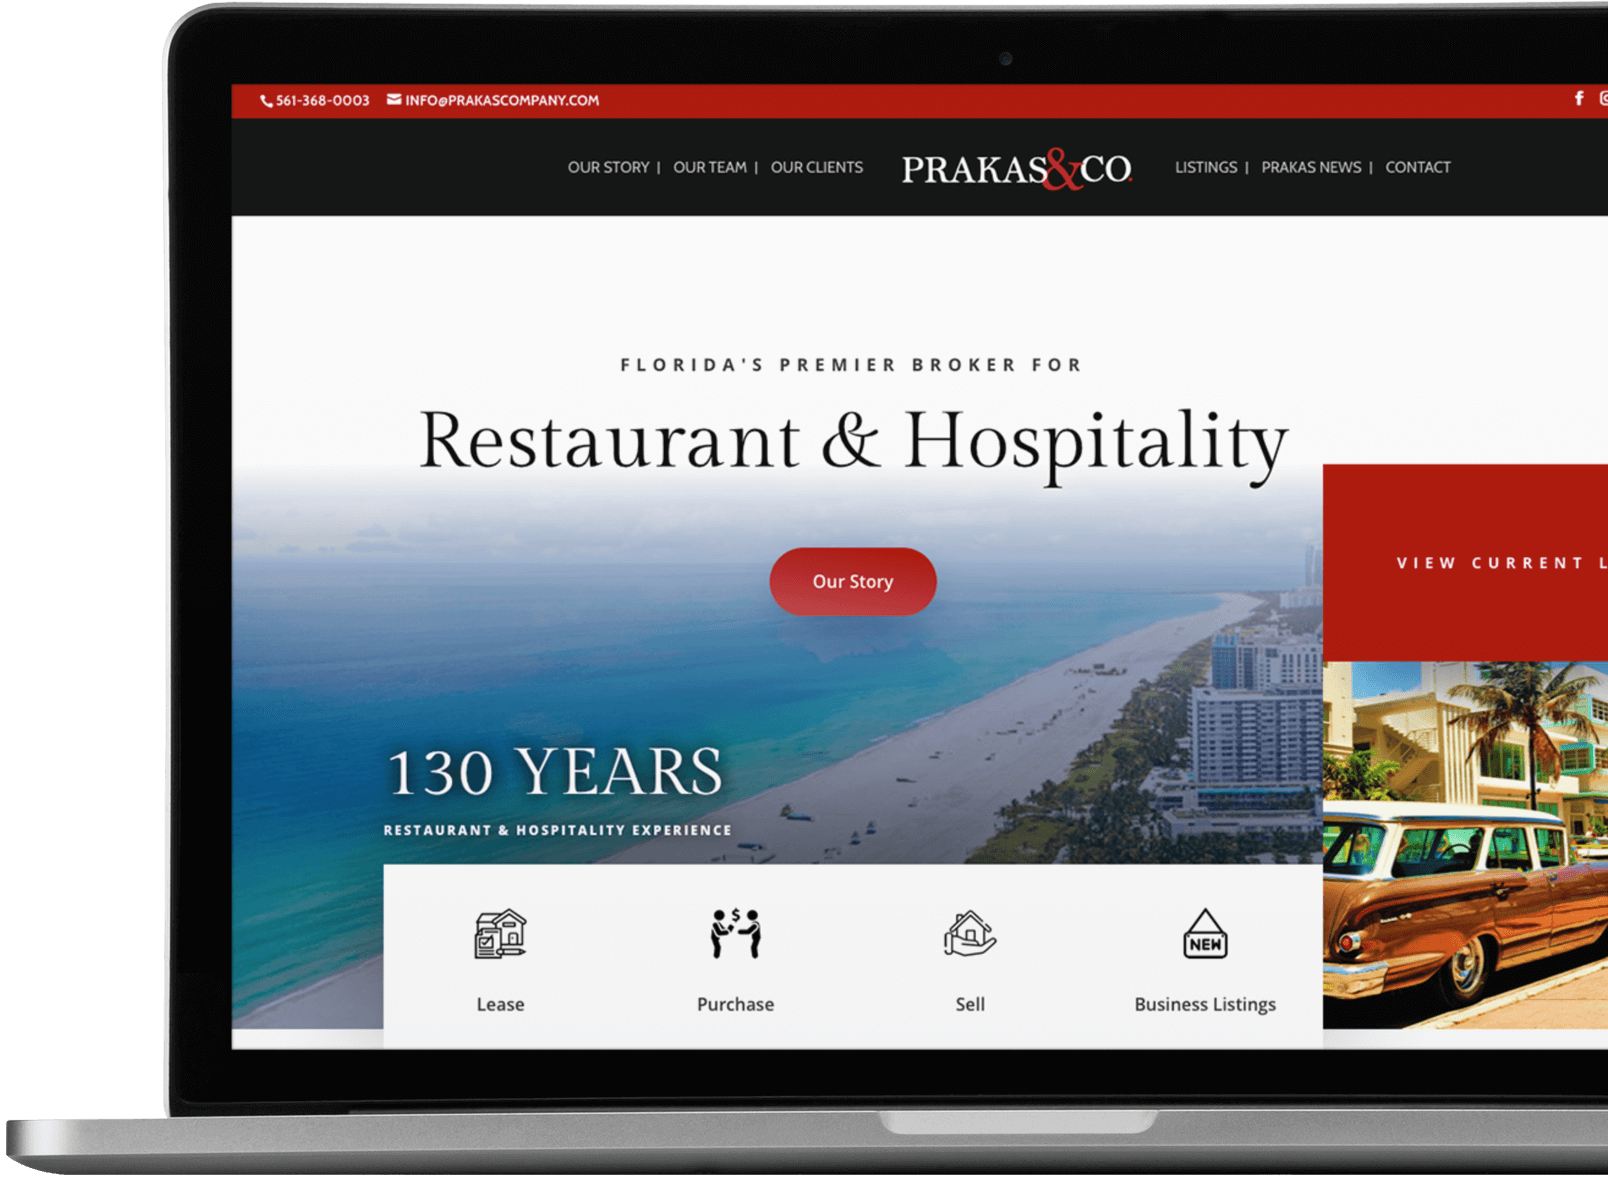 Recent website design for a Restaurant Broker in Florida dalex design group Home laptop right overflow 2x copy 1024x751